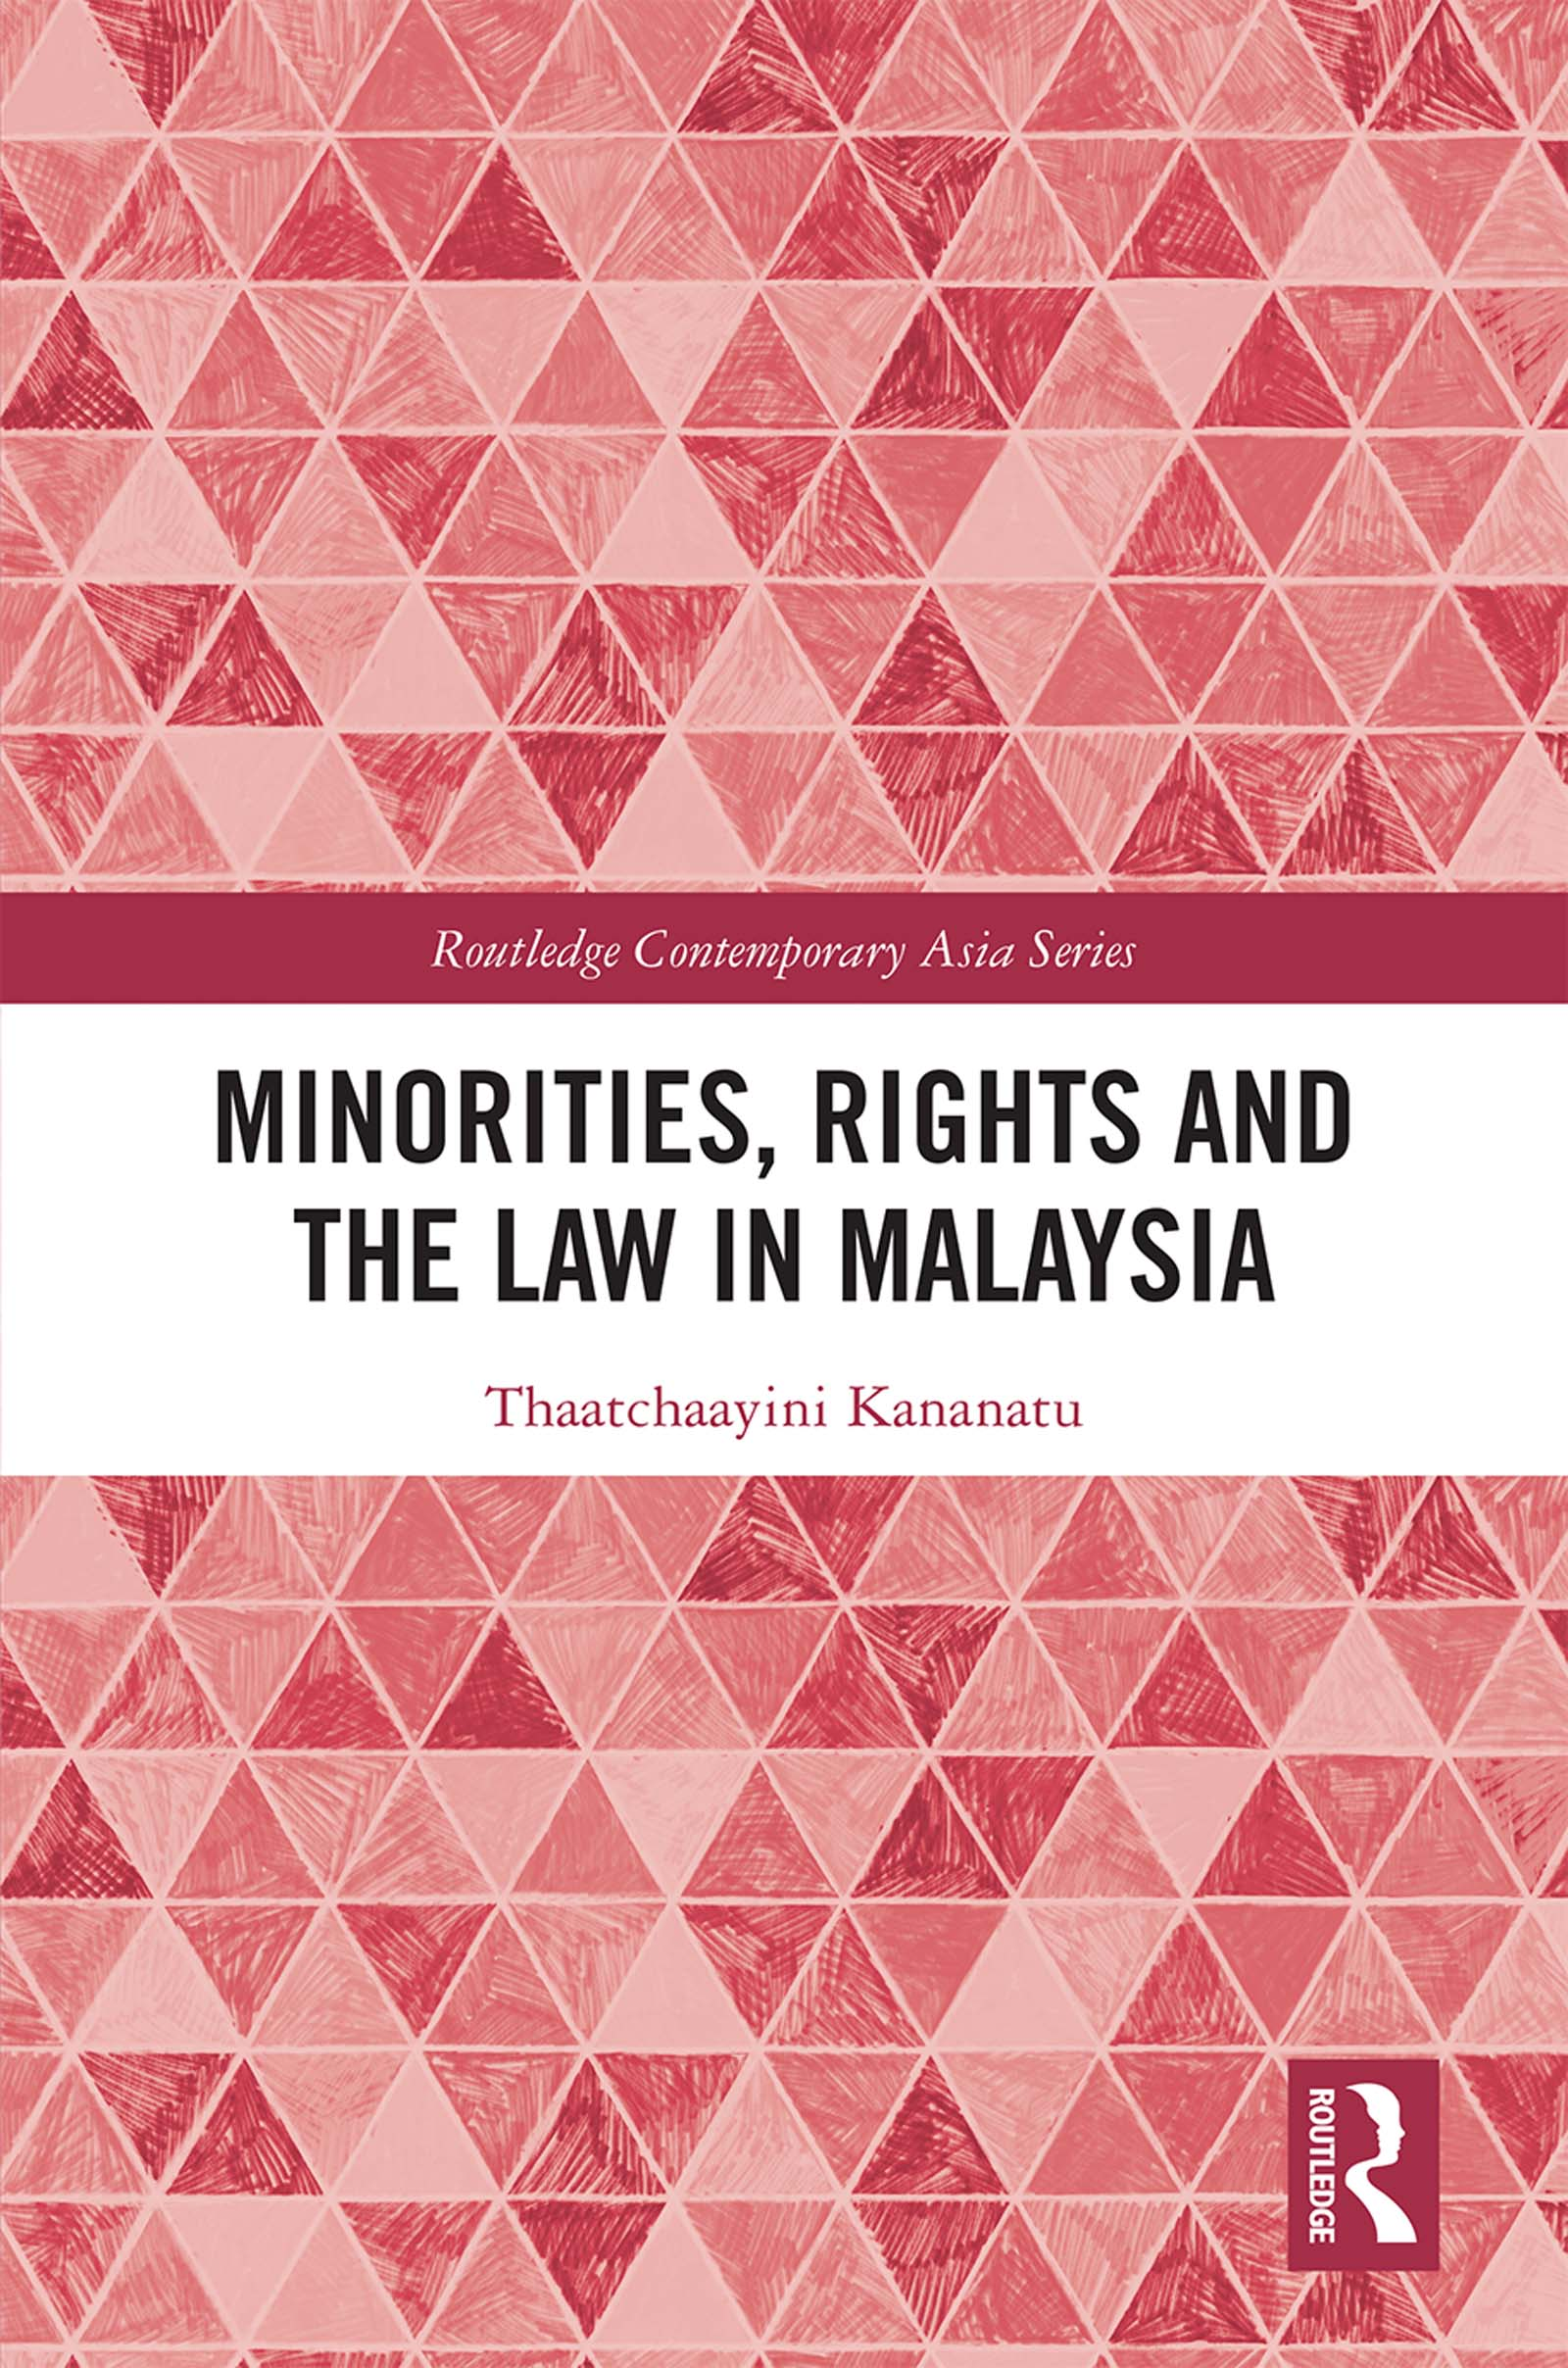 Minorities, Rights and the Law in Malaysia